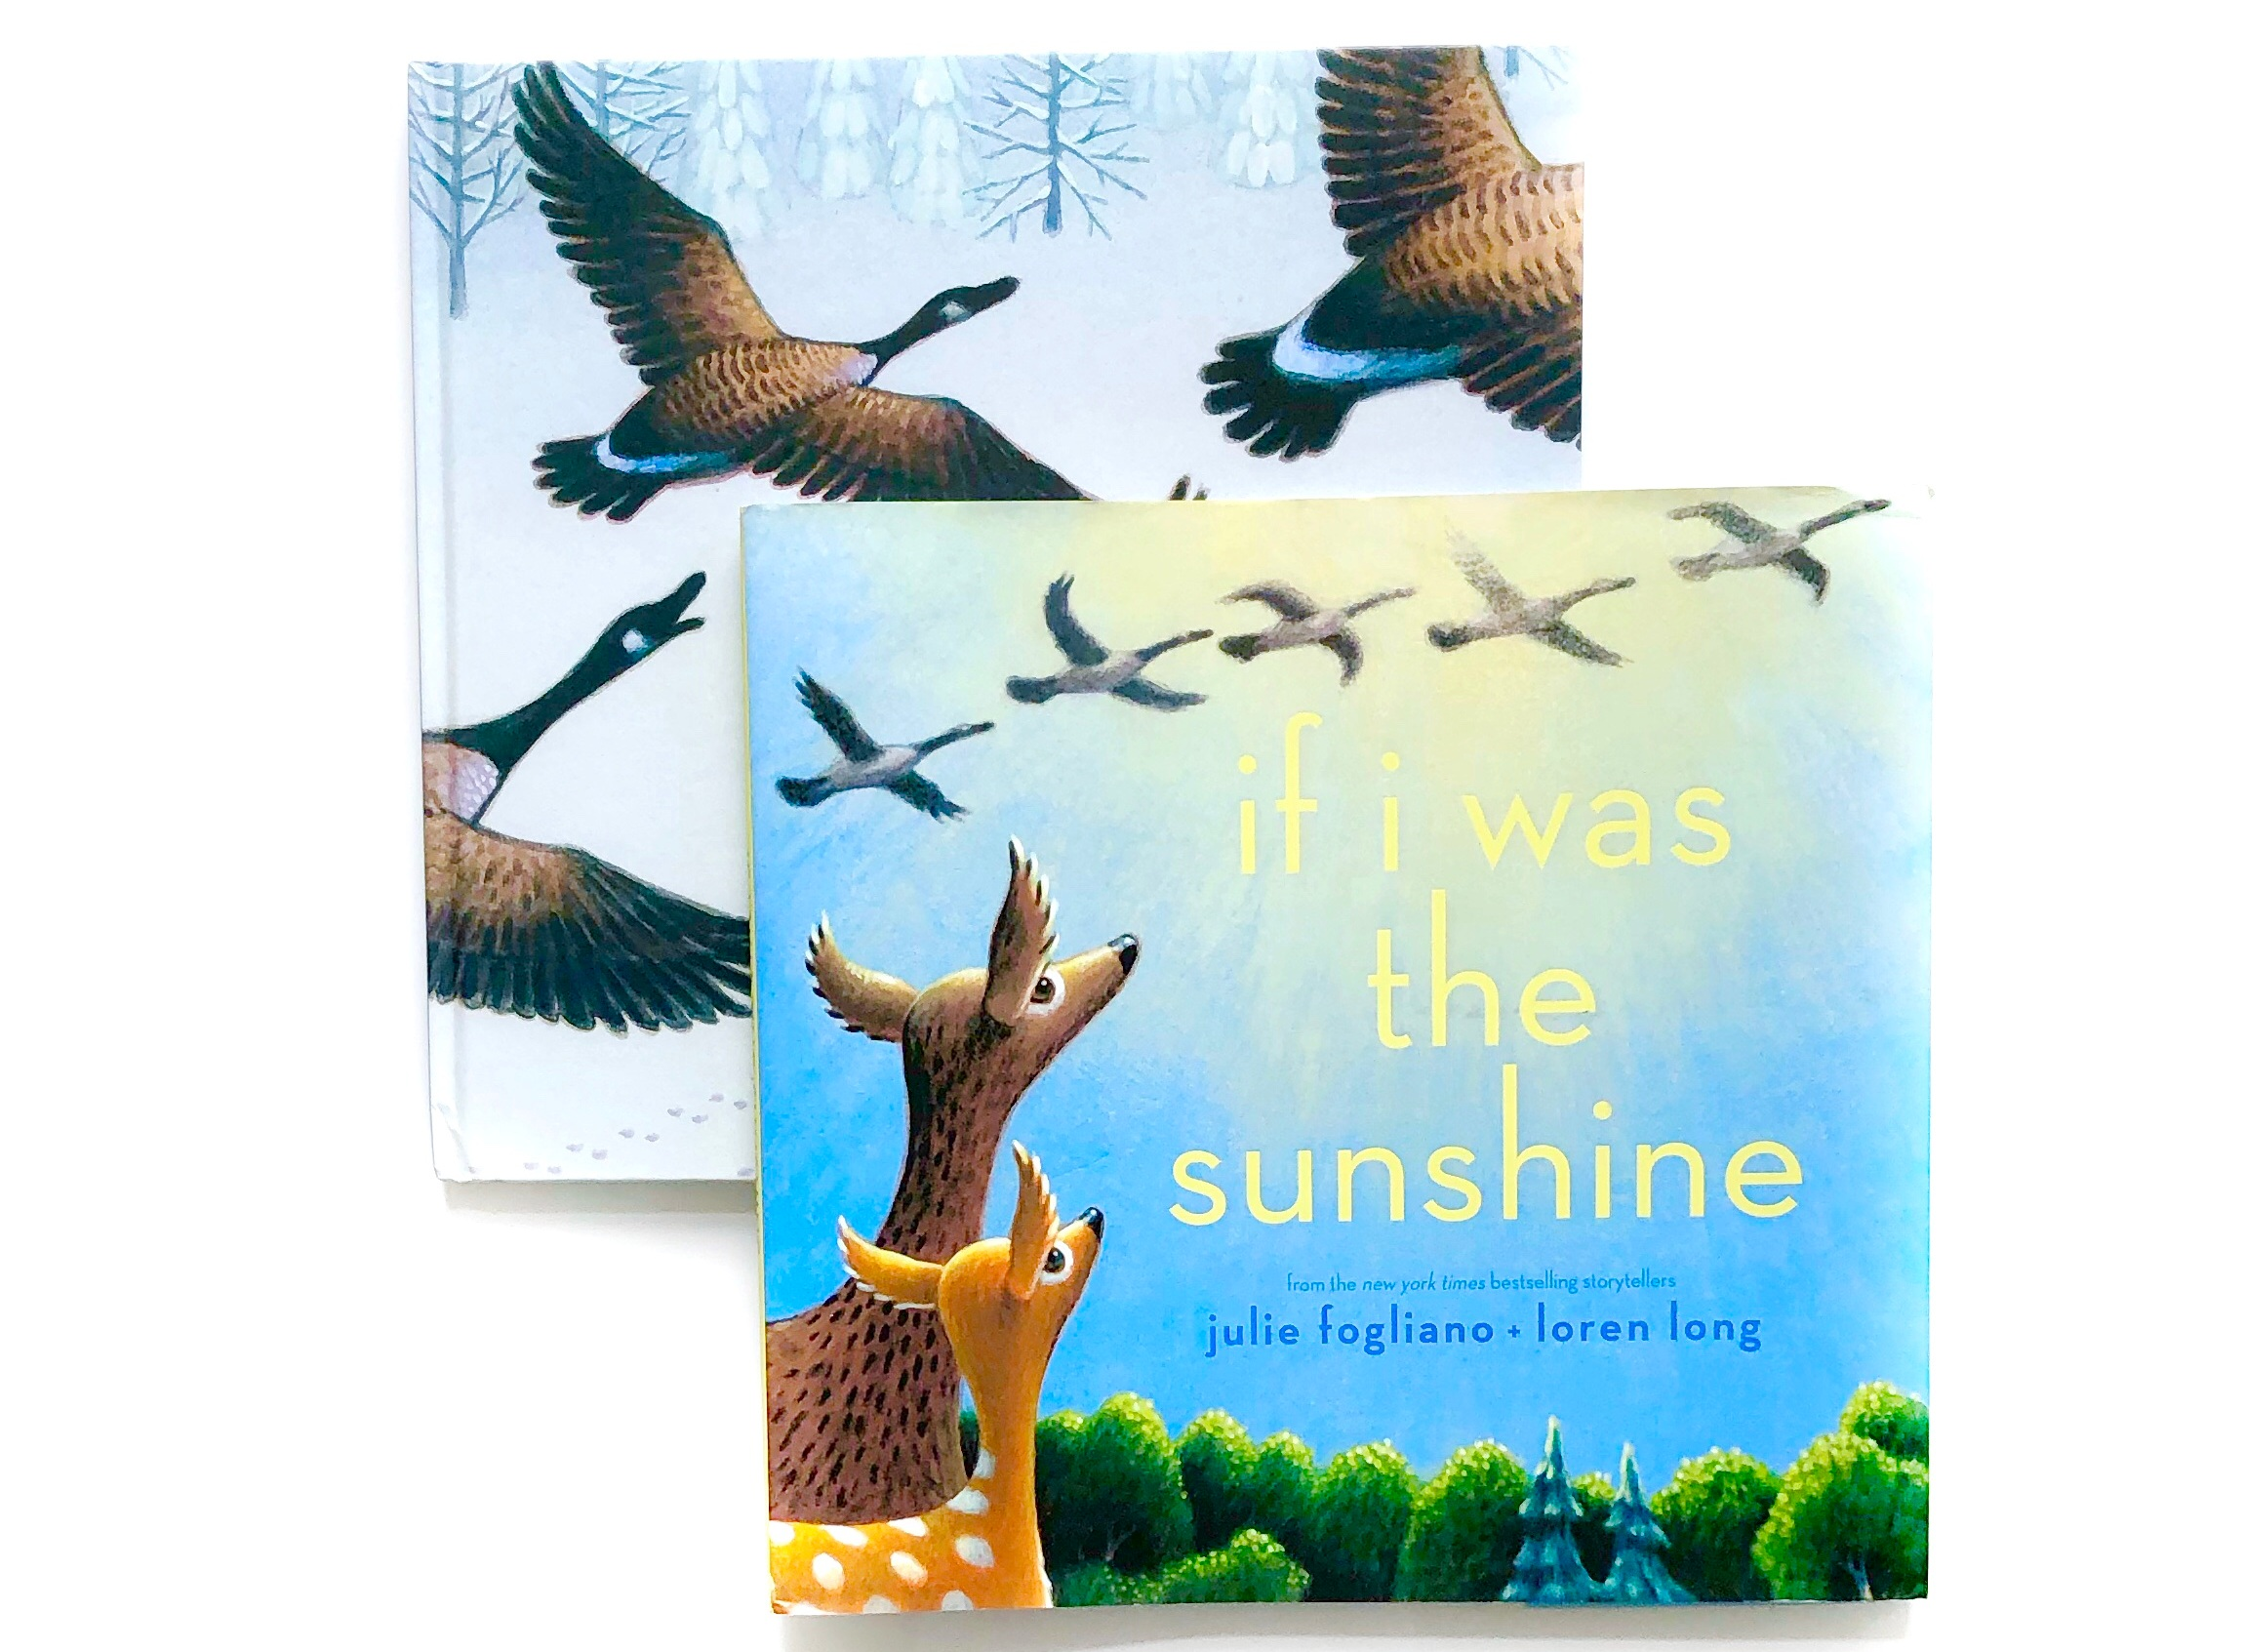 If I was the Sunshine, by Julie Fogliano and Loren Long